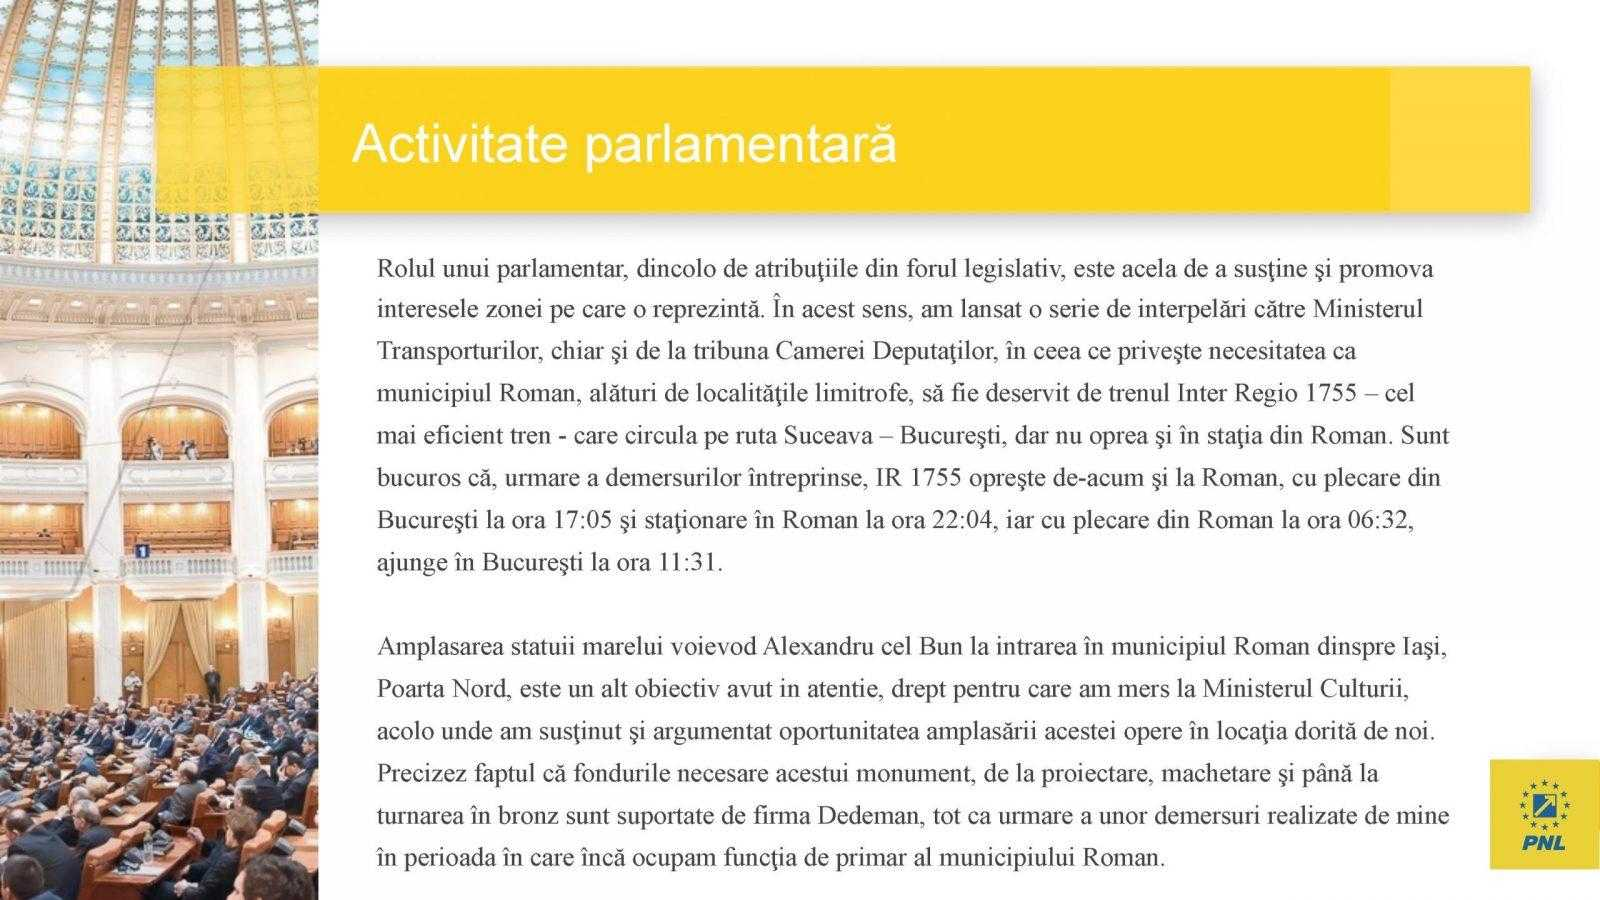 raport de activitate laurentiu leoreanu Page 12 scaled